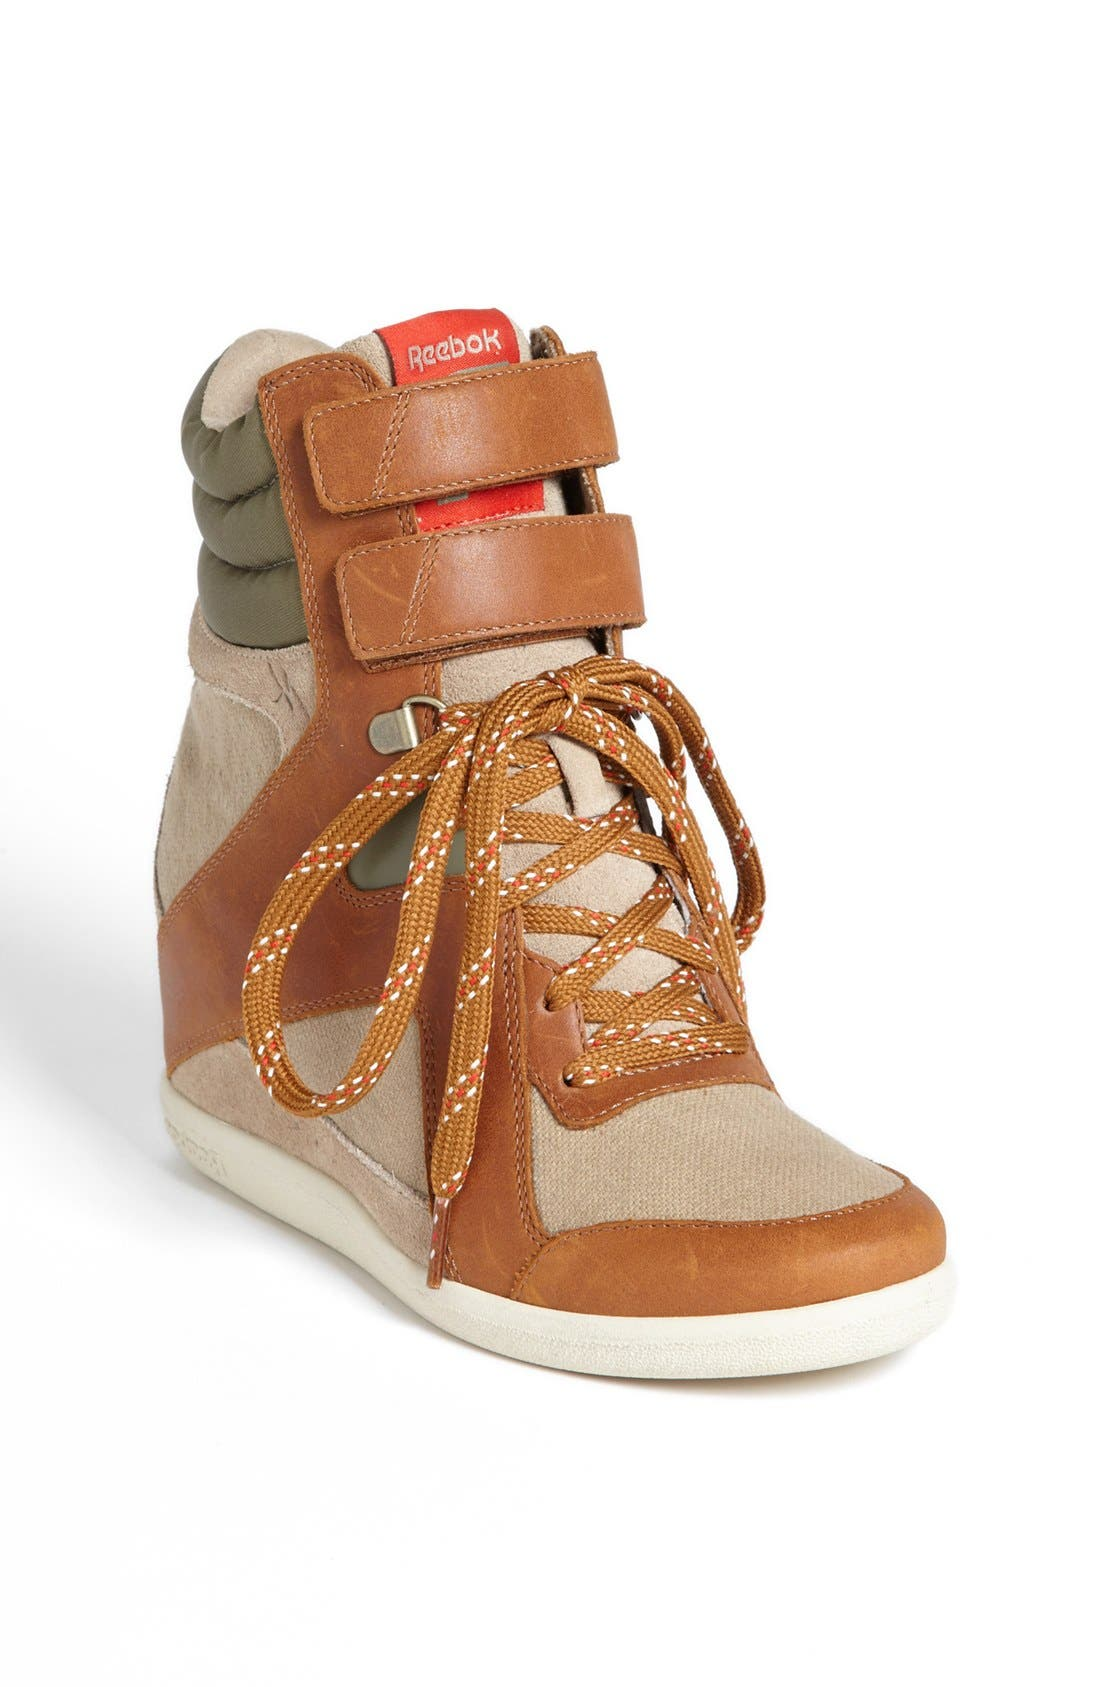 'Wedge A. Keys' Sneaker,                             Main thumbnail 1, color,                             Canvas/ Brown/ Green/ Red